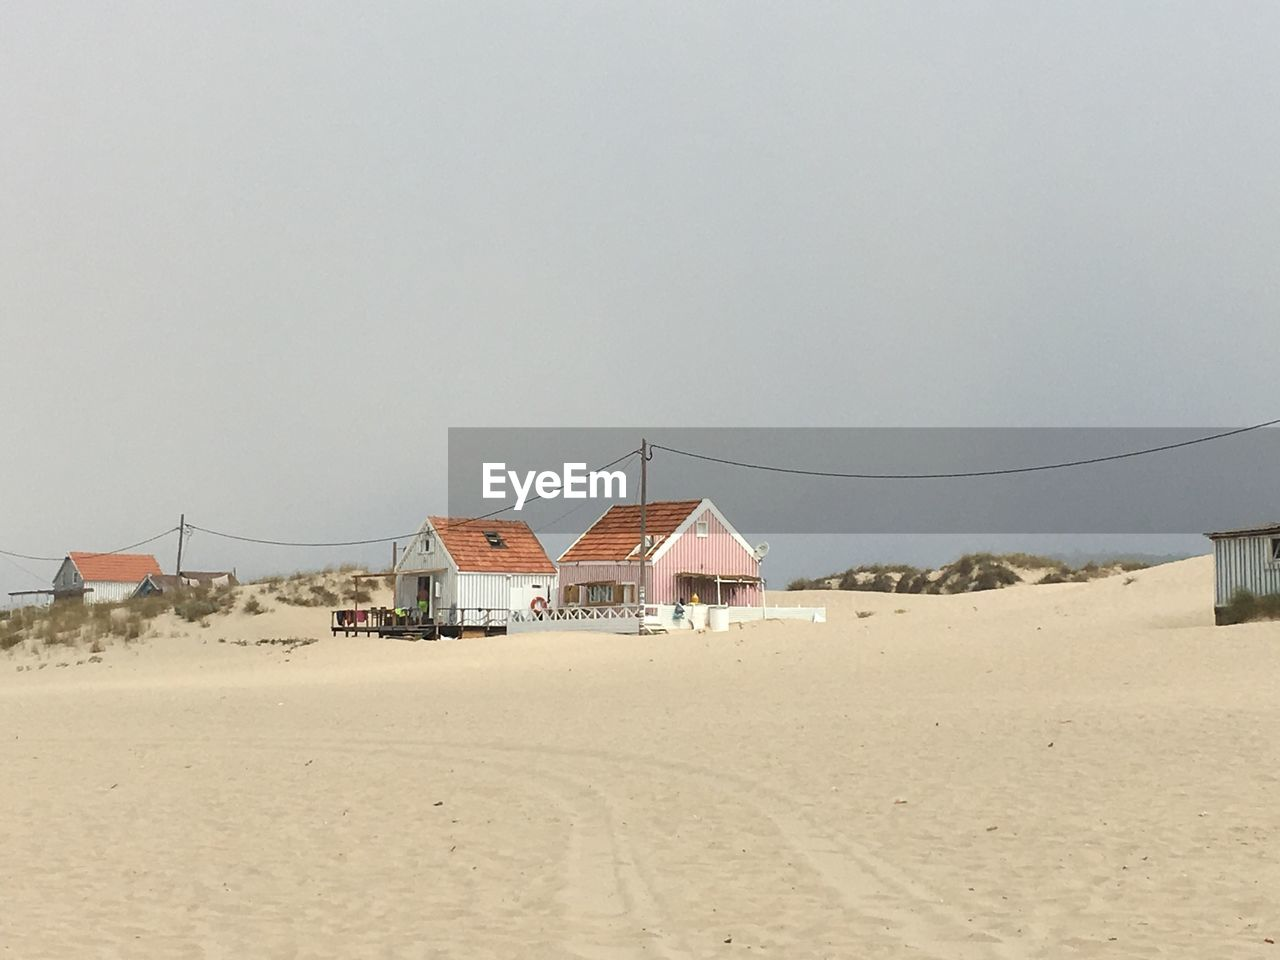 land, built structure, sand, architecture, sky, beach, nature, building exterior, copy space, day, no people, scenics - nature, clear sky, building, outdoors, landscape, hut, environment, house, tranquil scene, arid climate